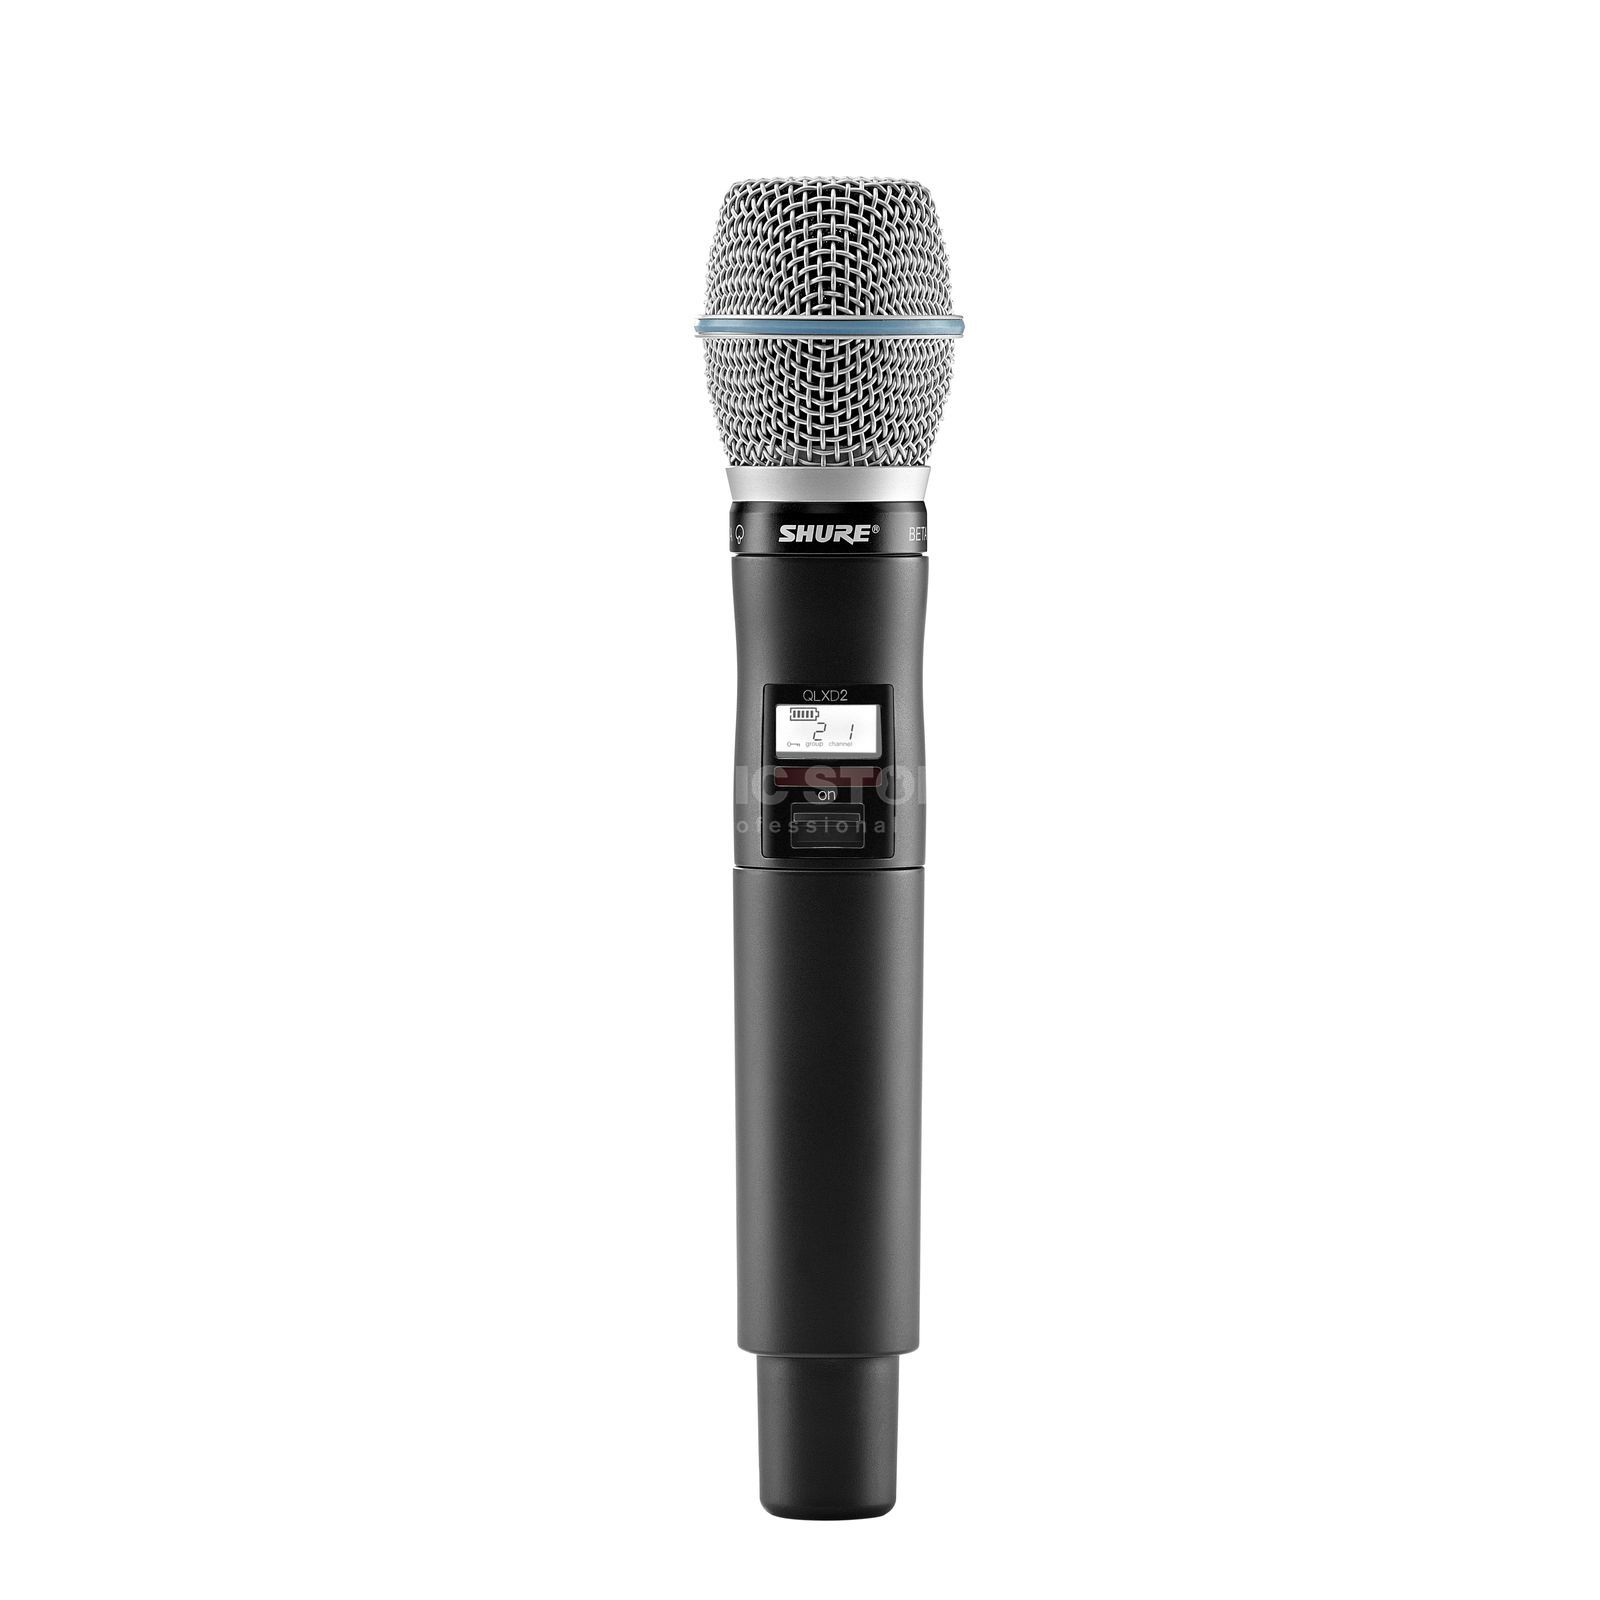 Shure QLXD2/B87A, S50 Handheld Transmitter with Beta 87A Produktbillede